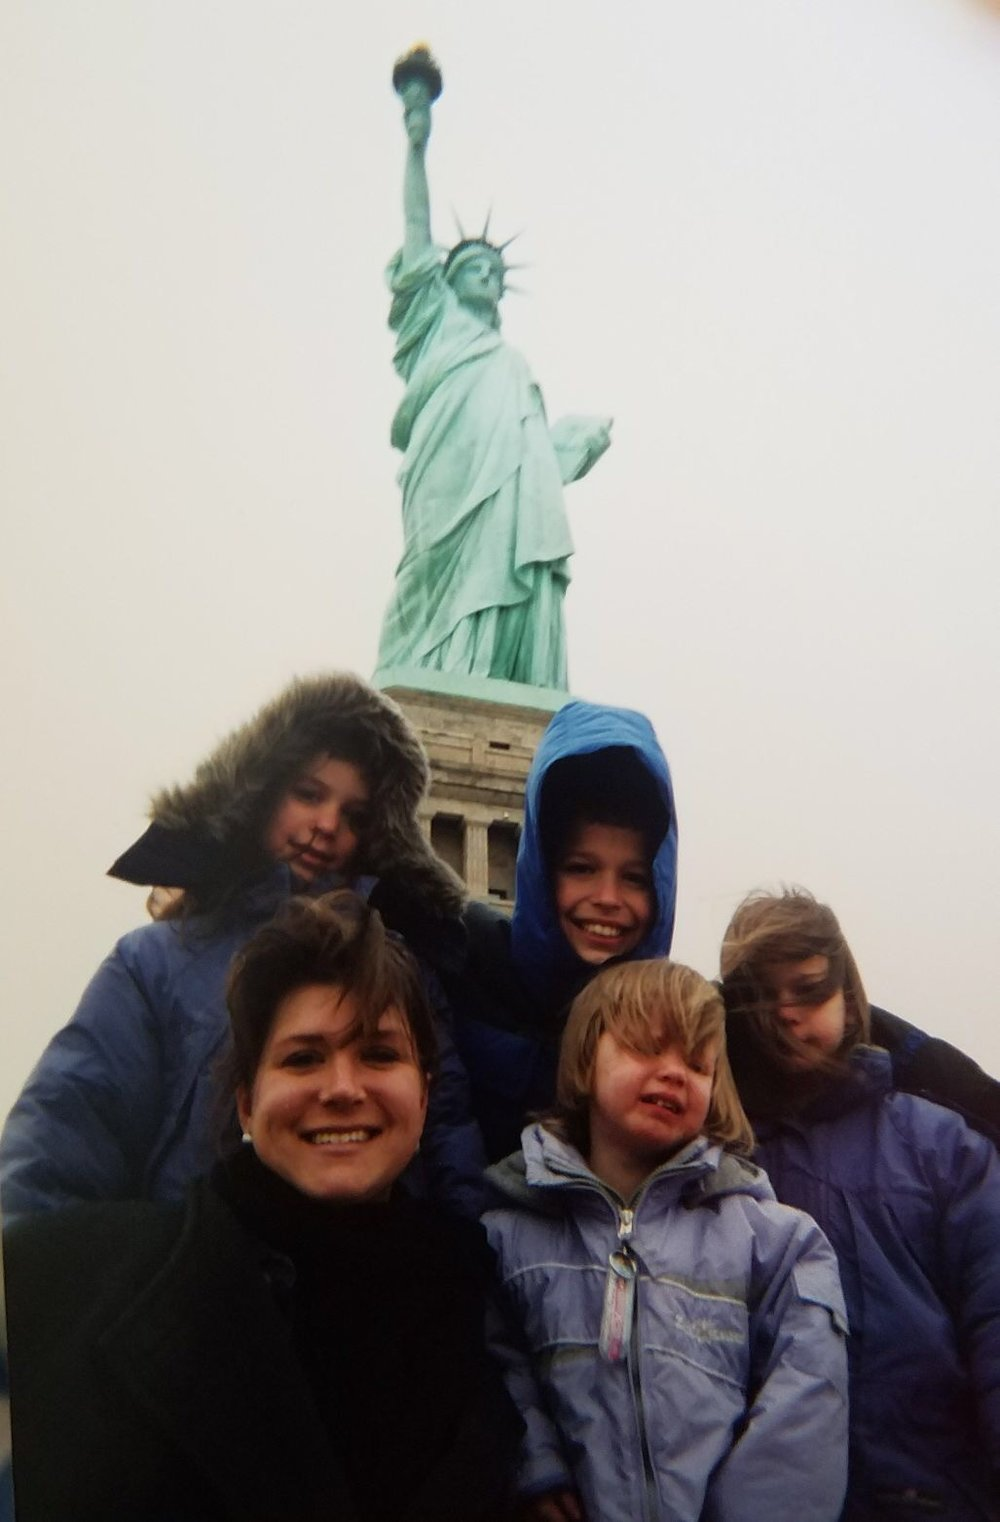 Way, way back. . . on the drive home from a Faith and Freedom Tour, we stopped at the Statue of Liberty. Some of us were more excited than others. (Trivia: this was long before GPS and google maps, so I called the office in San Antonio to have someone help me navigate through New York City. Everyone of my children remember that day!)